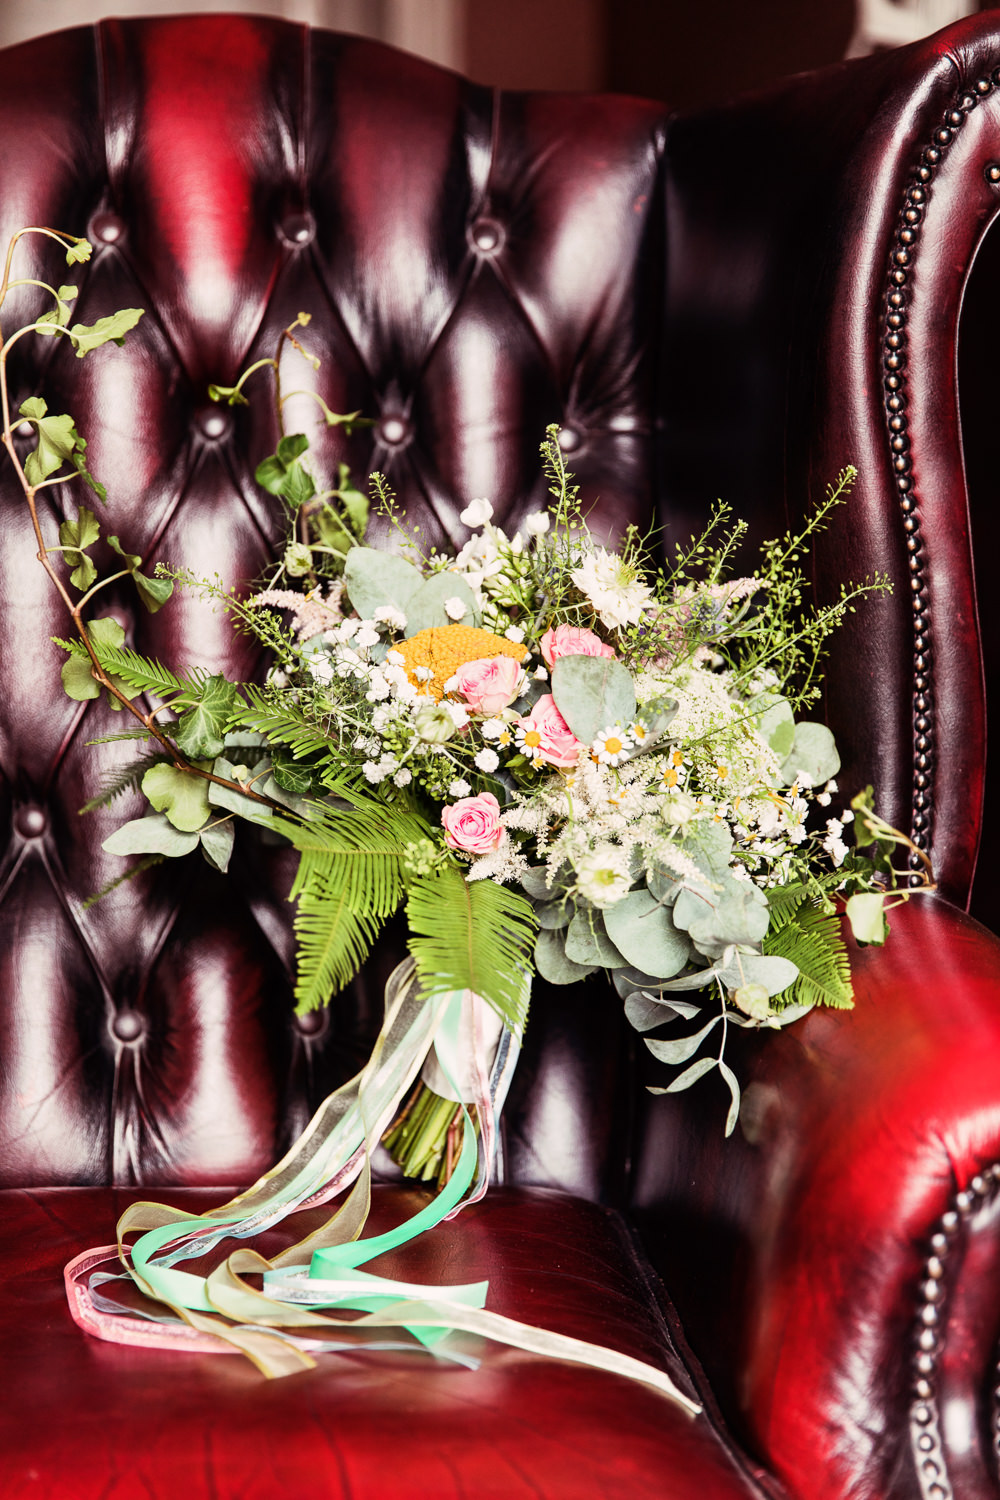 Bride Bridal Bouquet Wildflowers Meadow Daisy Fern Festival Wedding Mismatched Country Camilla Lucinda Photography